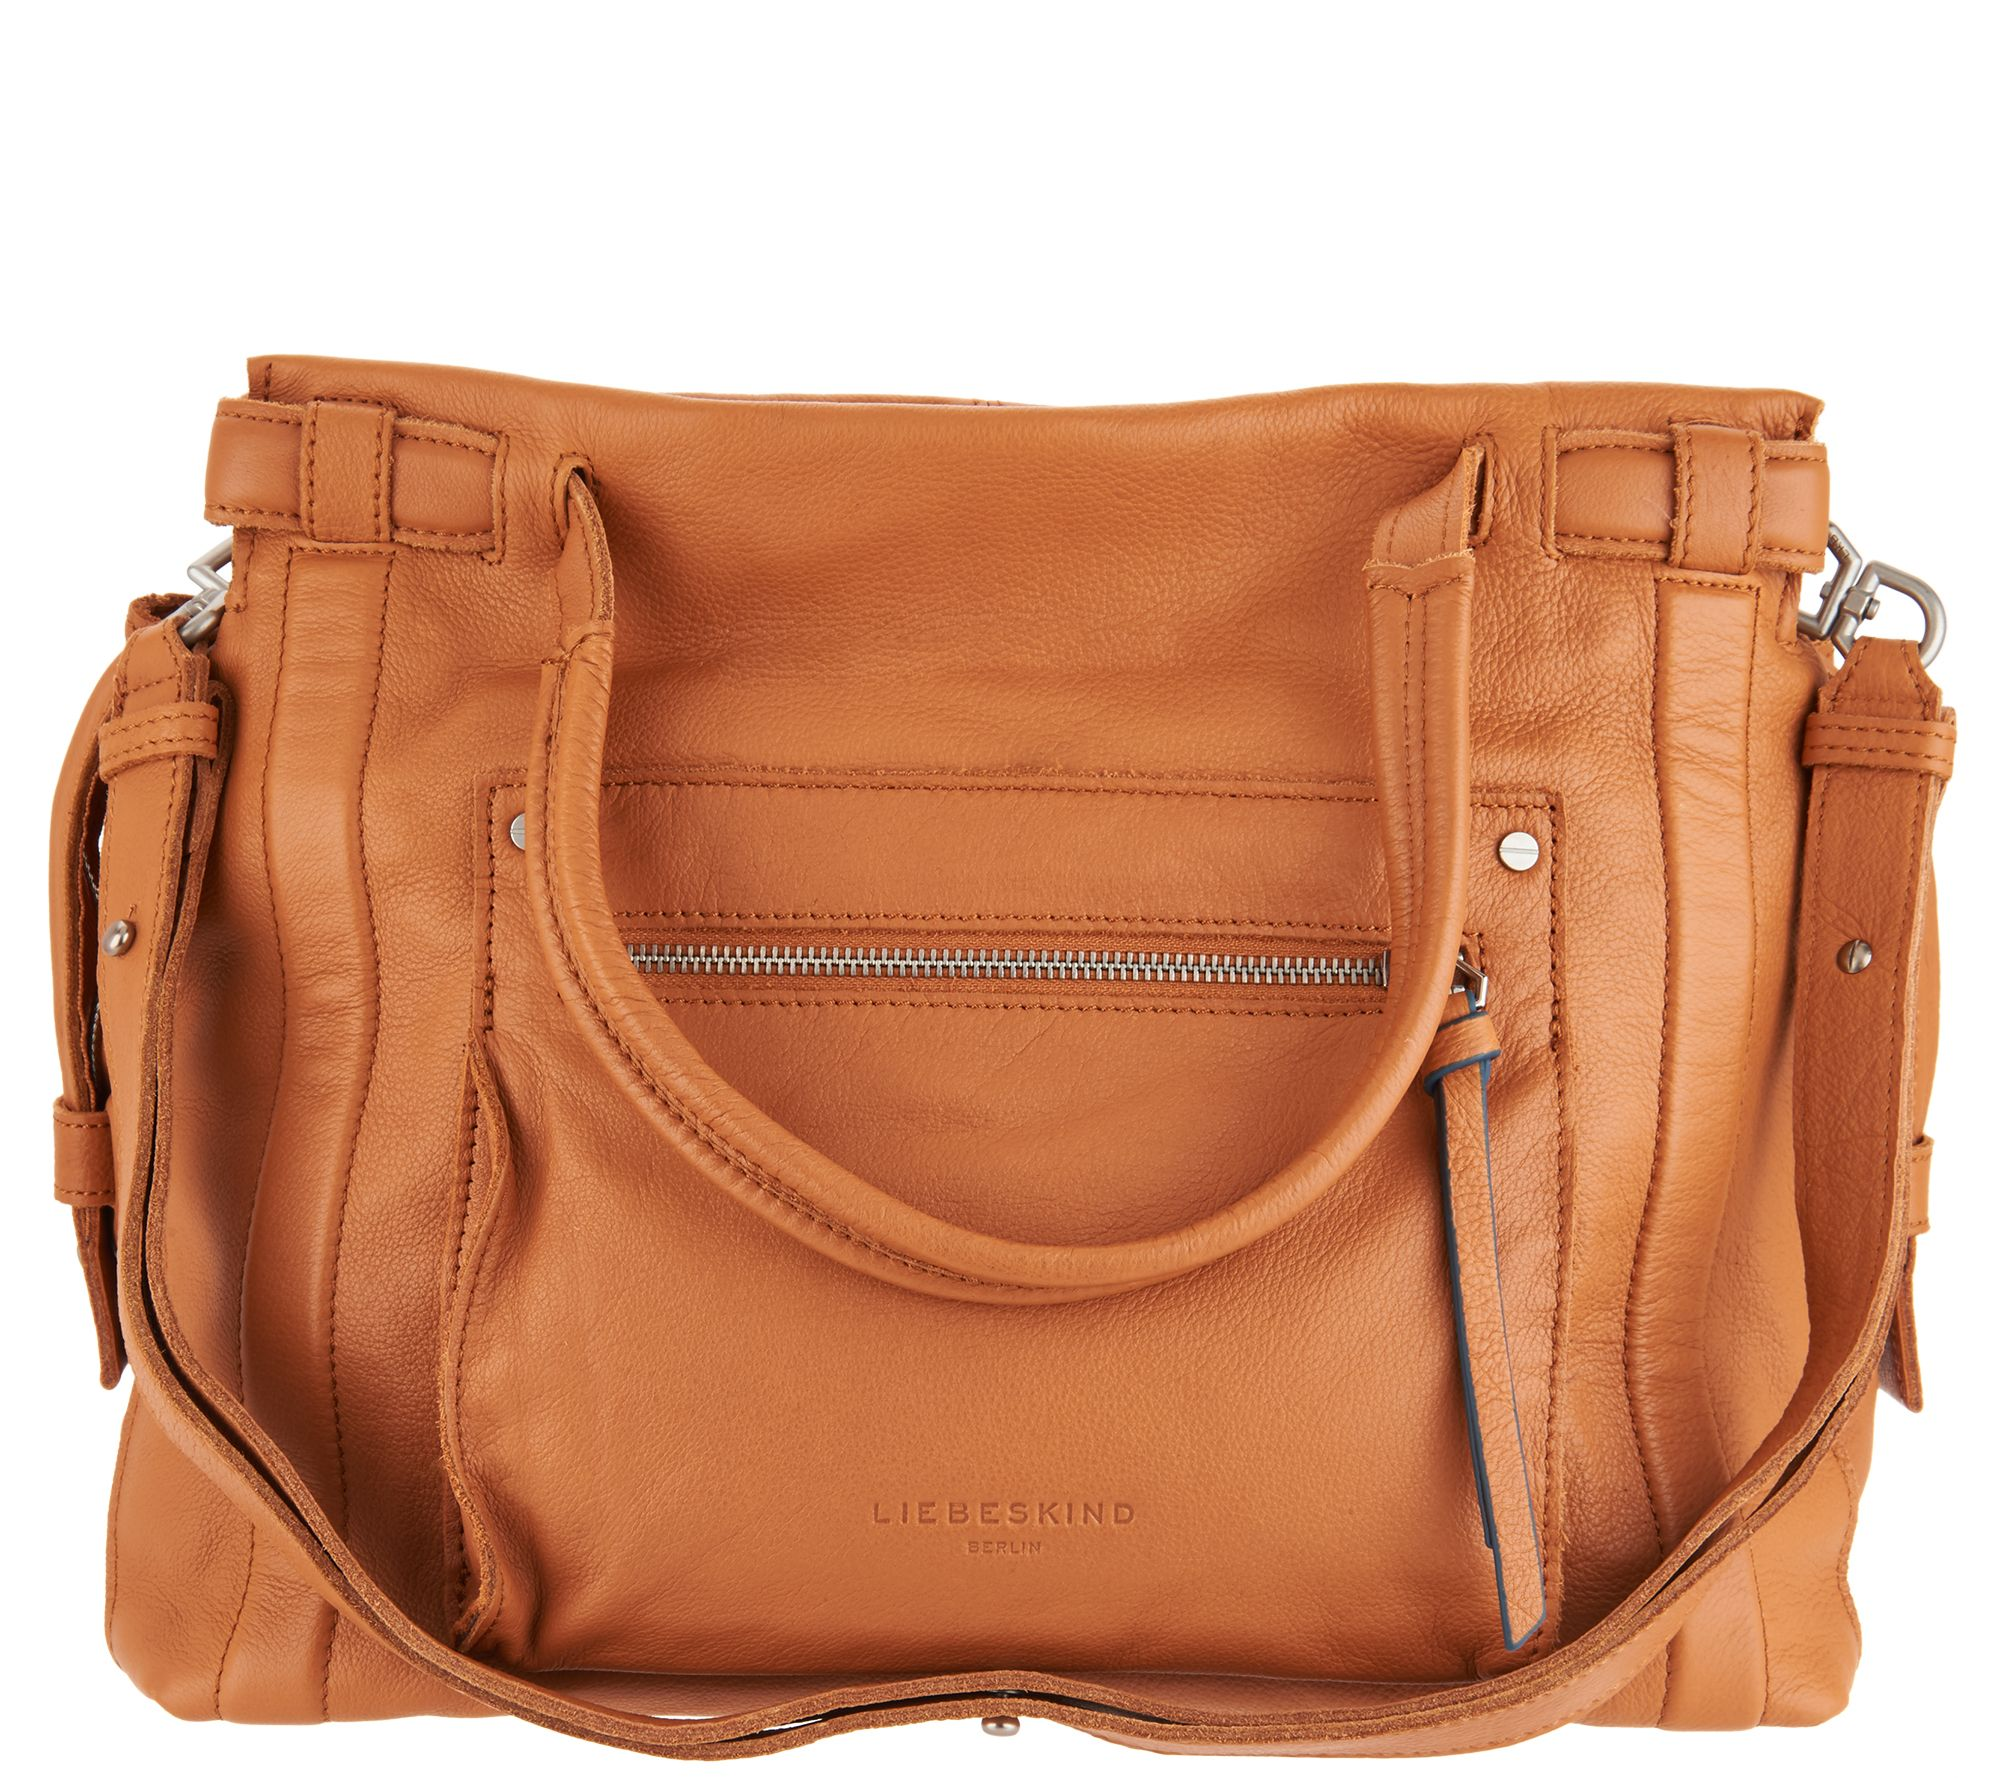 f847fabaa5450 Liebeskind Sporty Vintage Leather Satchel -Virginia - Page 1 — QVC.com